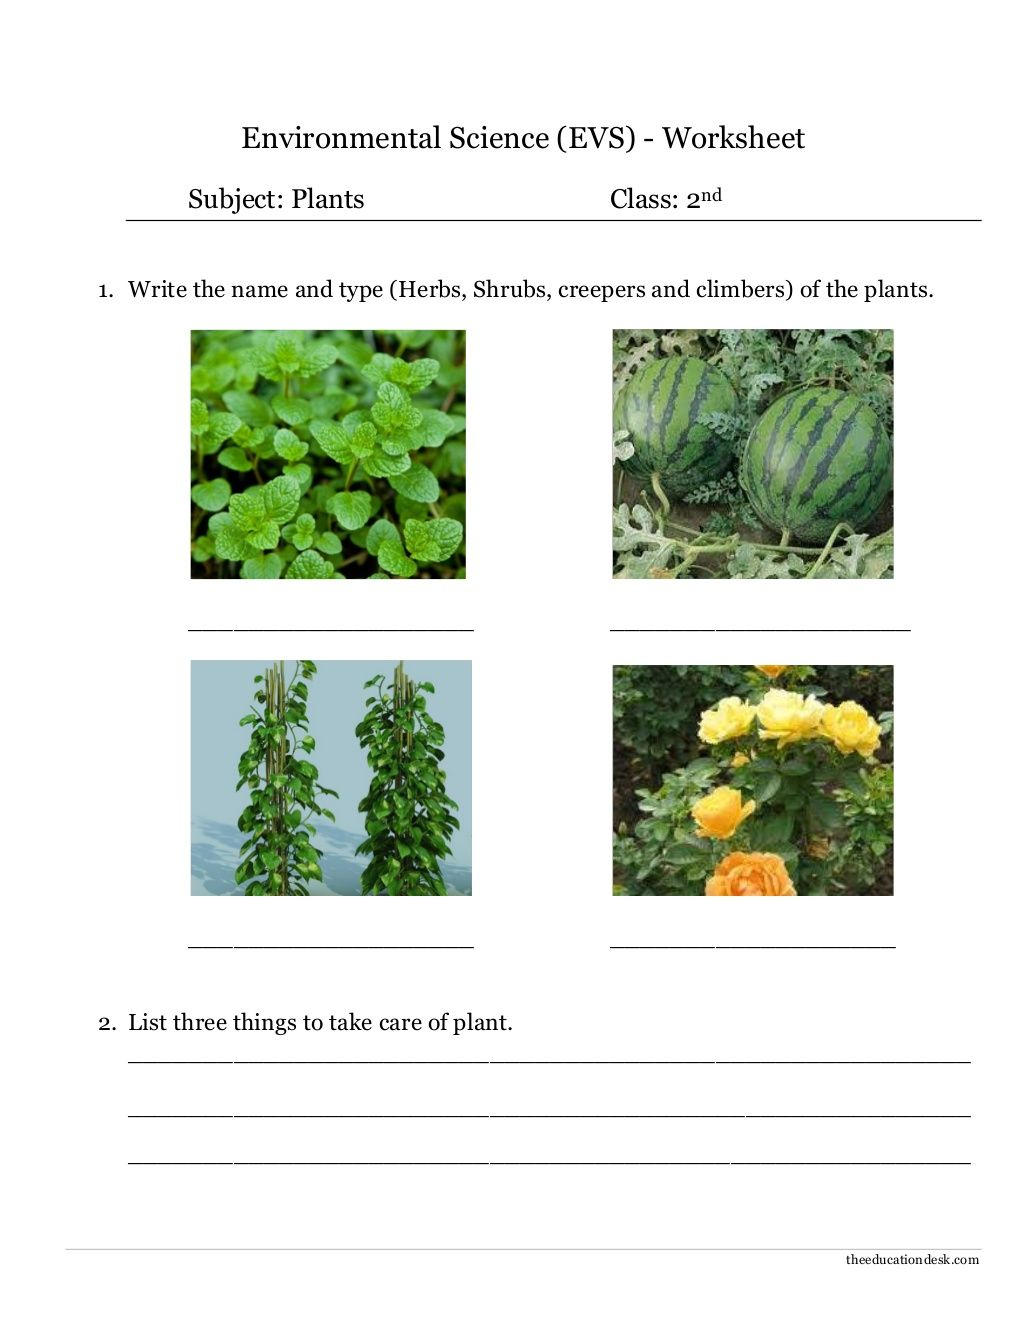 Environmental Science Evs Plants Worksheet Class Ii